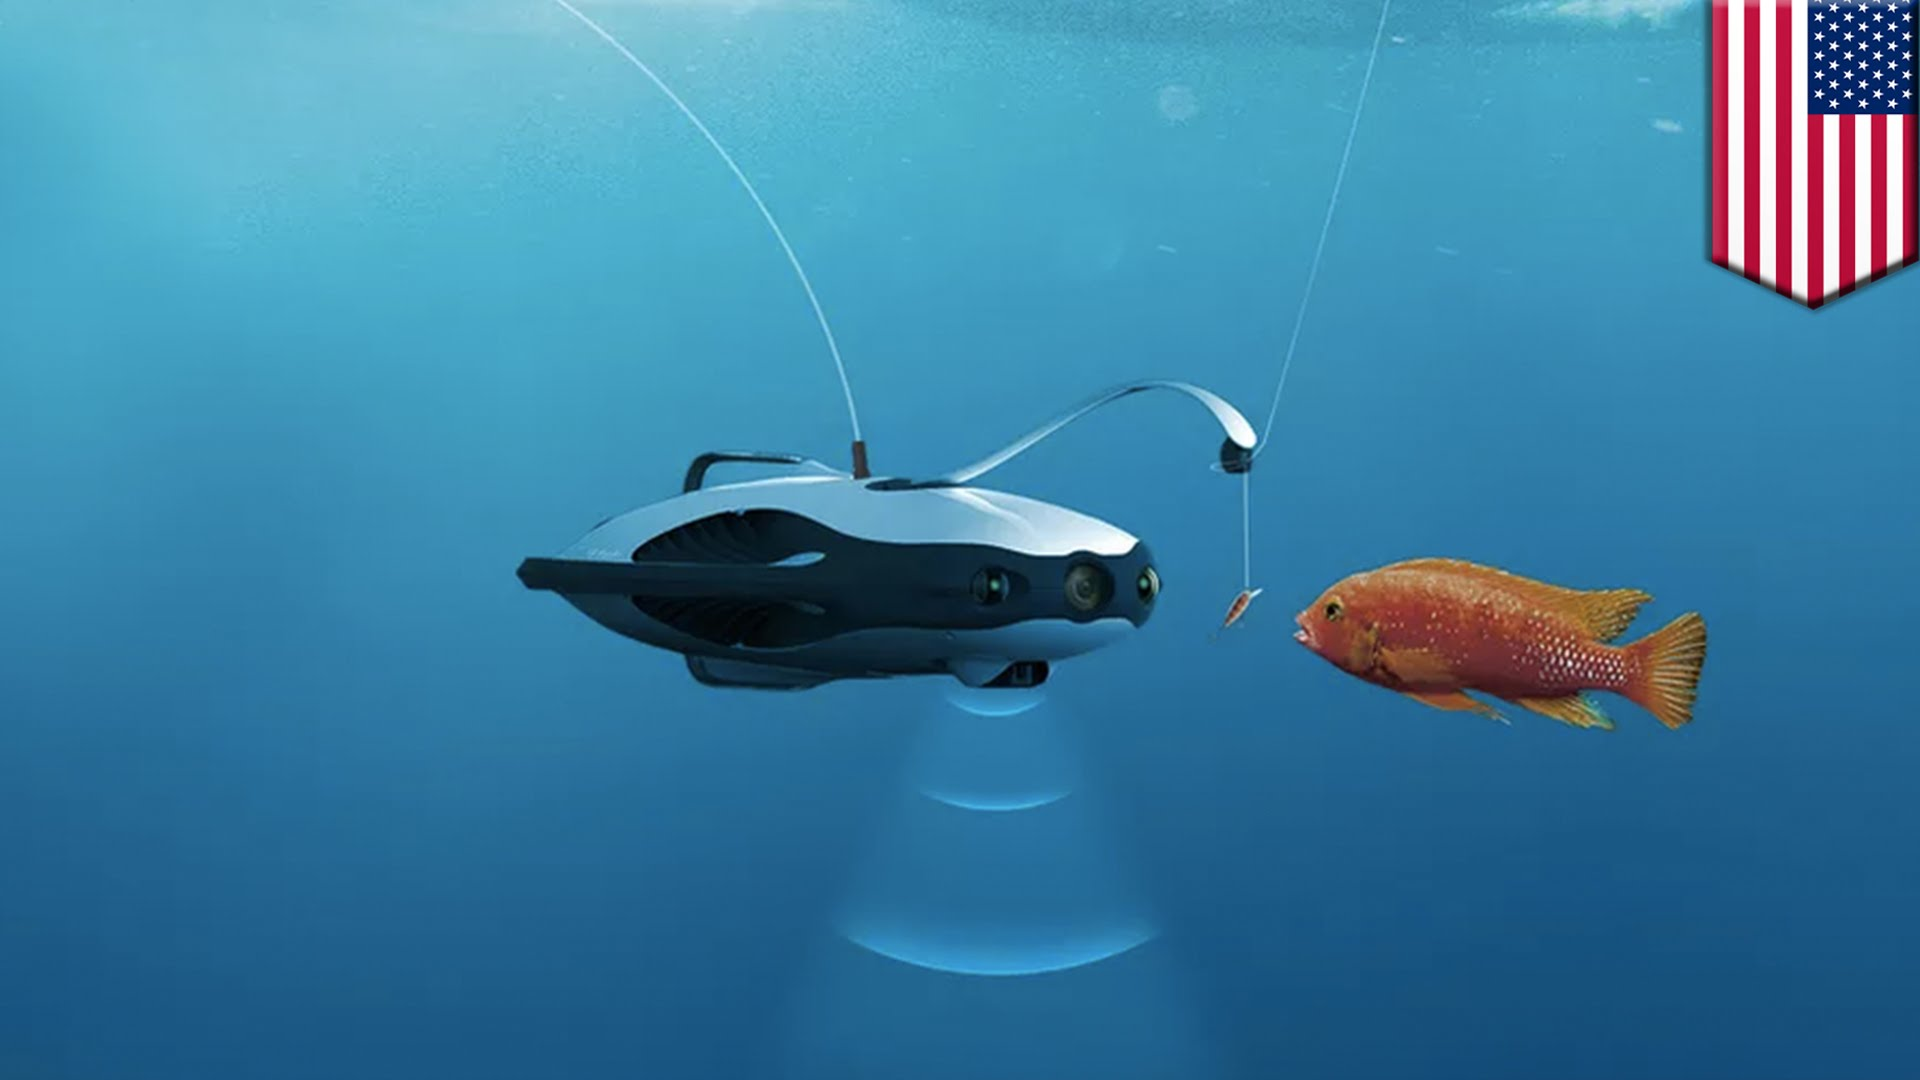 PowerRay lets users see underwater, revolutionizes fishing